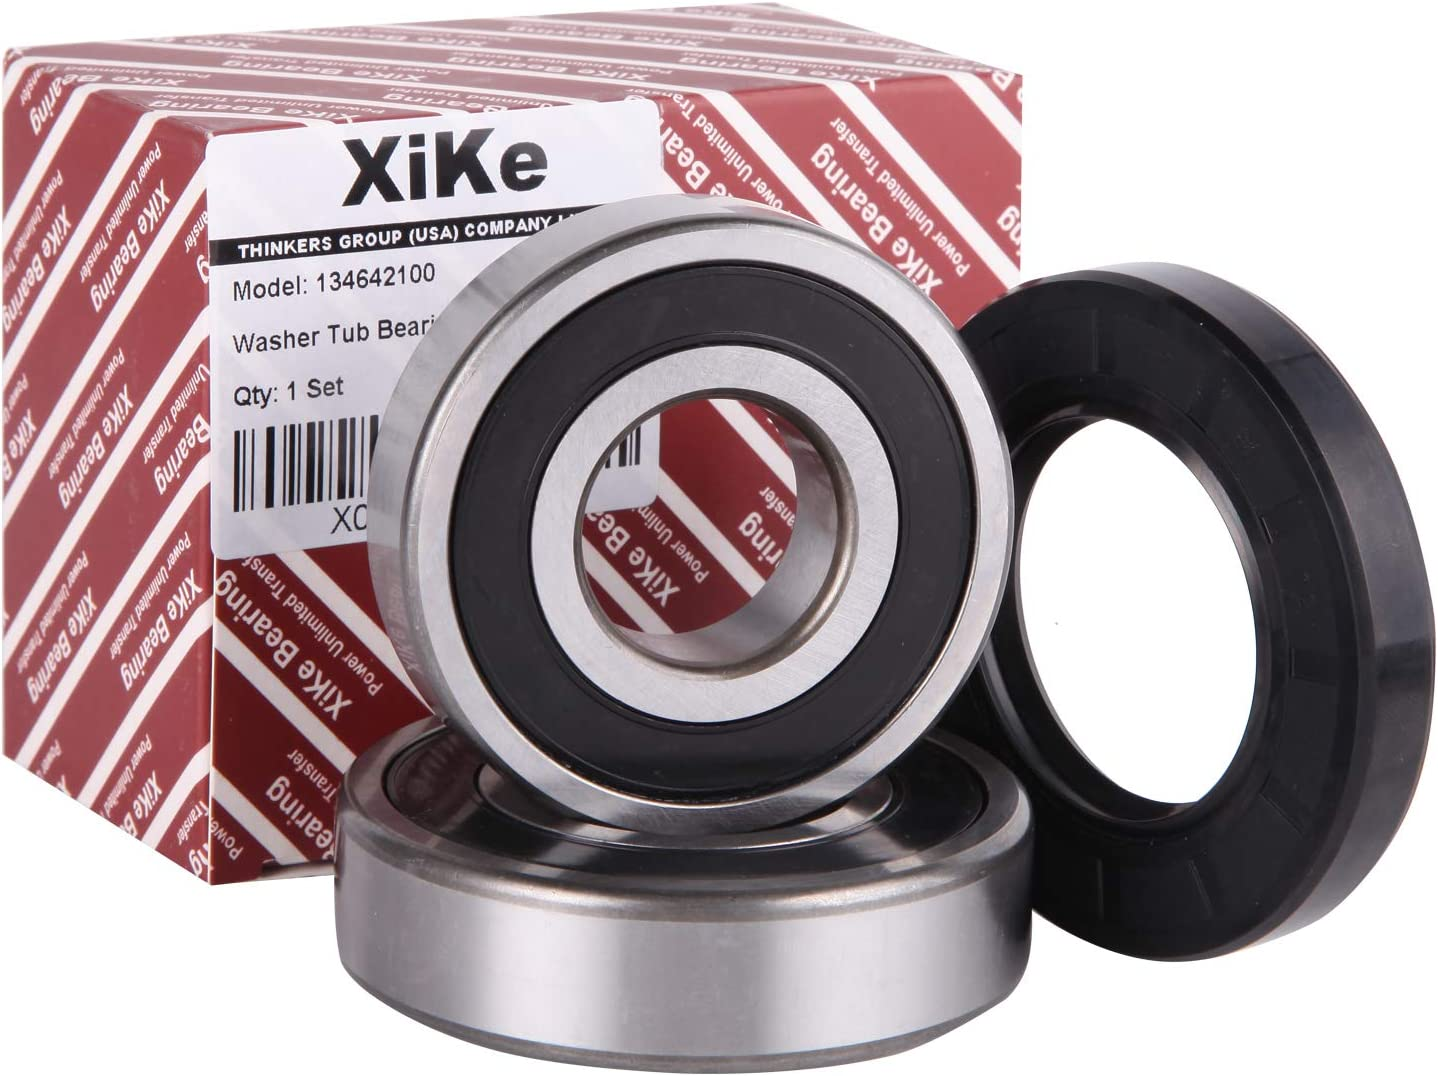 XiKe 134642100 Washer Tub Bearing & Seal Kit Rotate Quiet and Durable, Replacement for Electrolux and Kenmore 1482894, AH2350420, EA2350420 Etc.